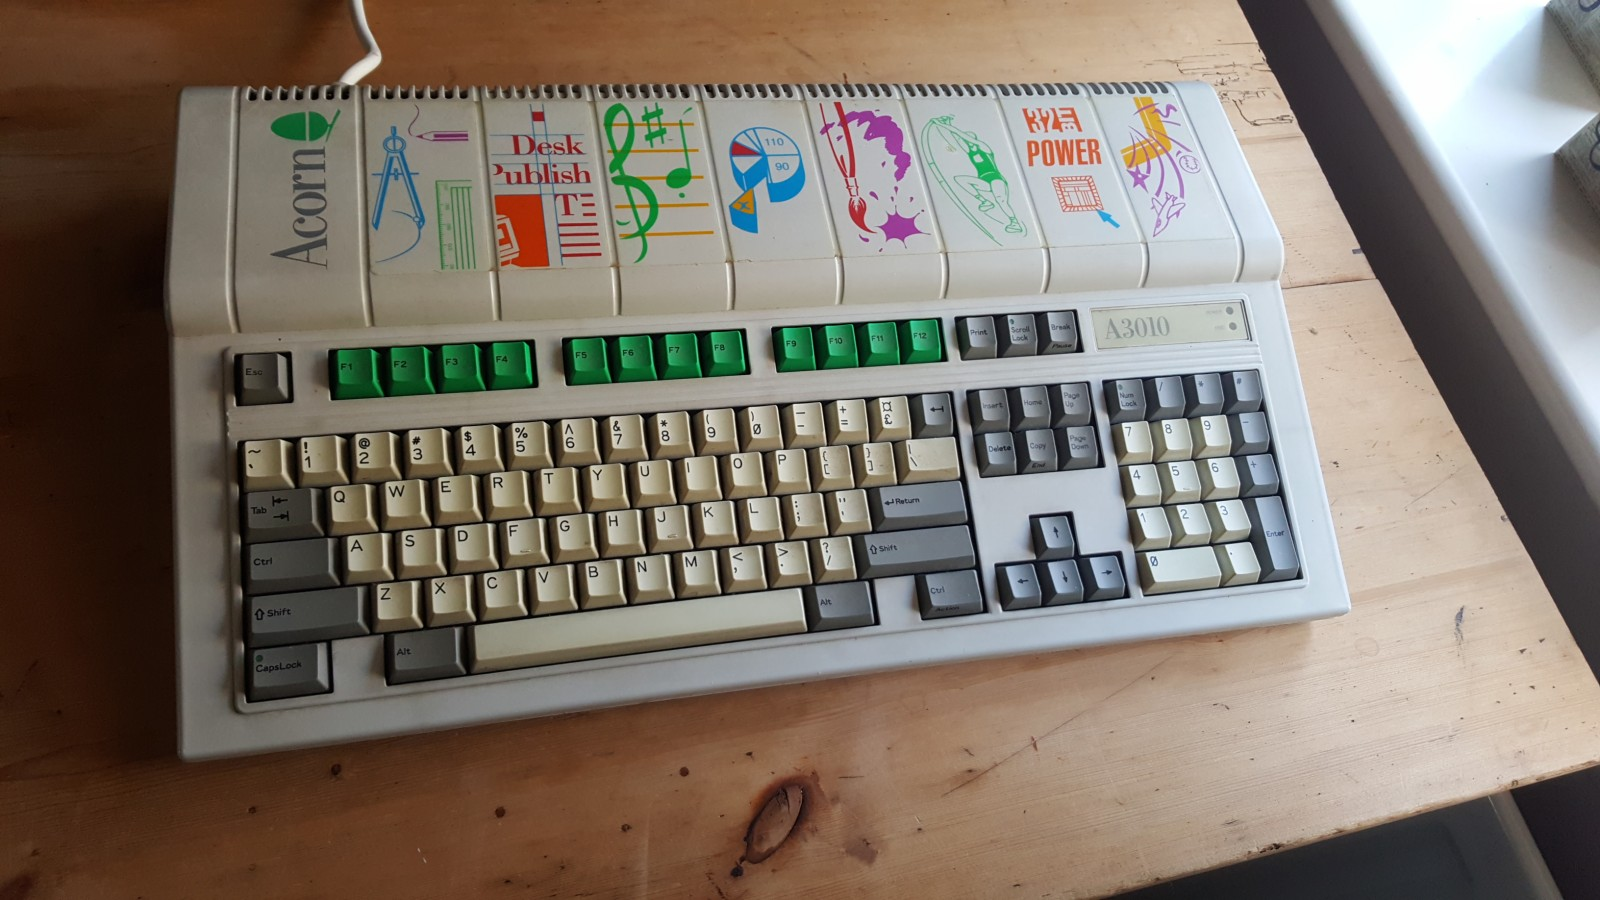 My Acorn Archimedes A3010